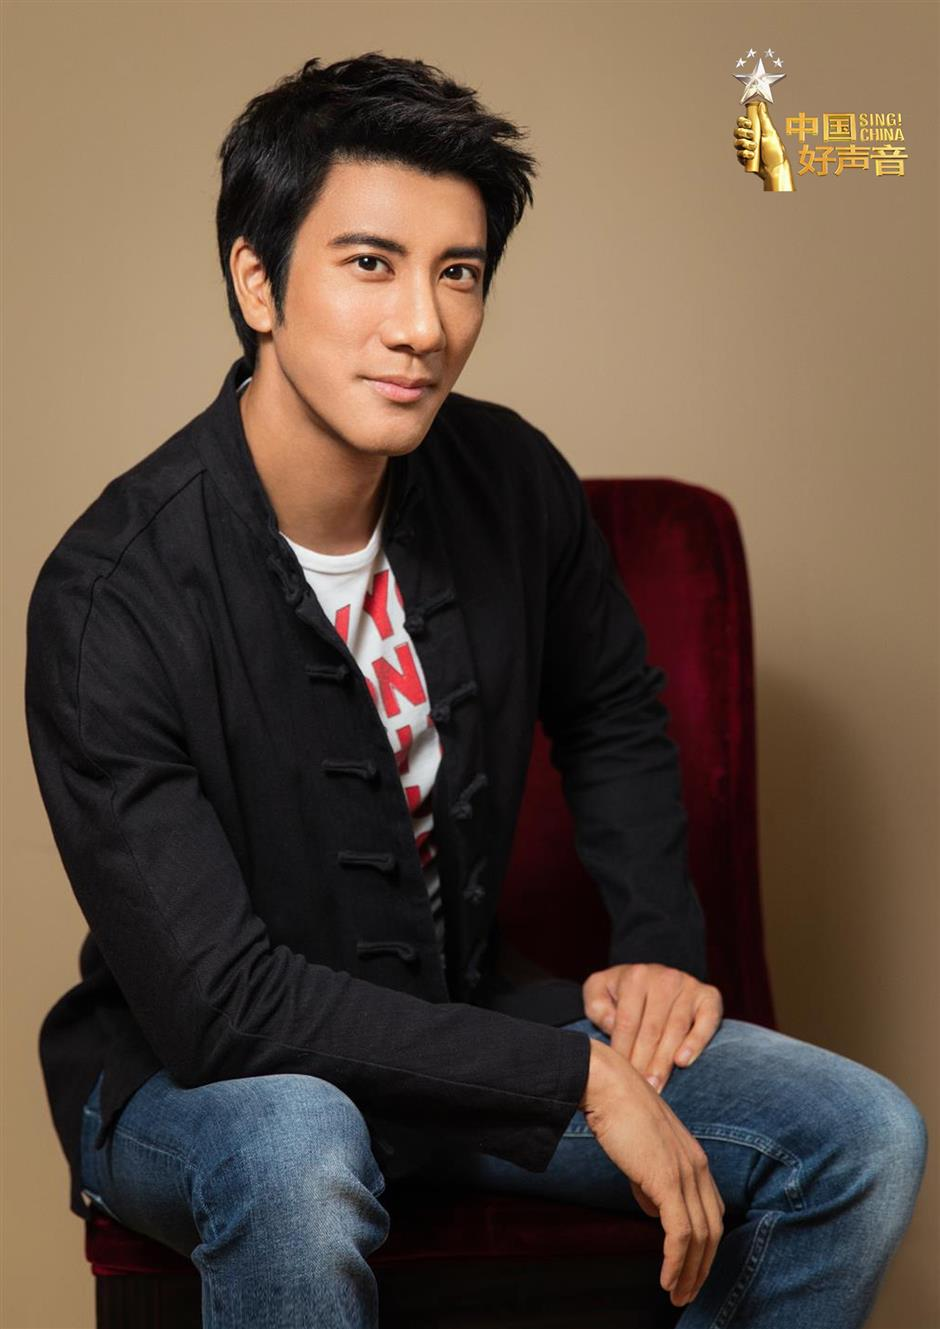 Wang Leehom to be a judge for the '2019 Sing! China' - SHINE